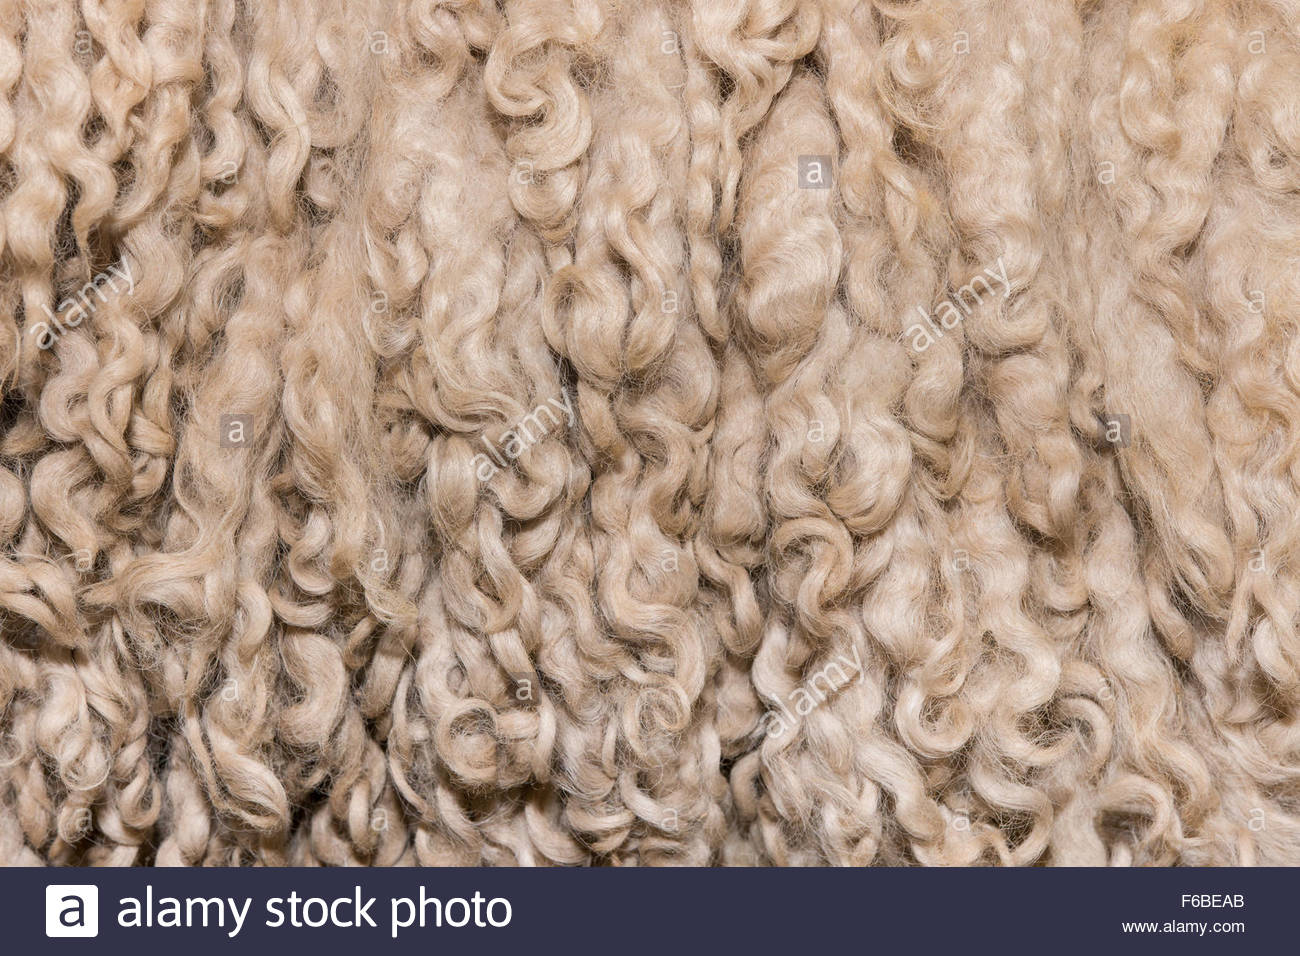 Texture of unprocessed curly merino wool - Stock Image